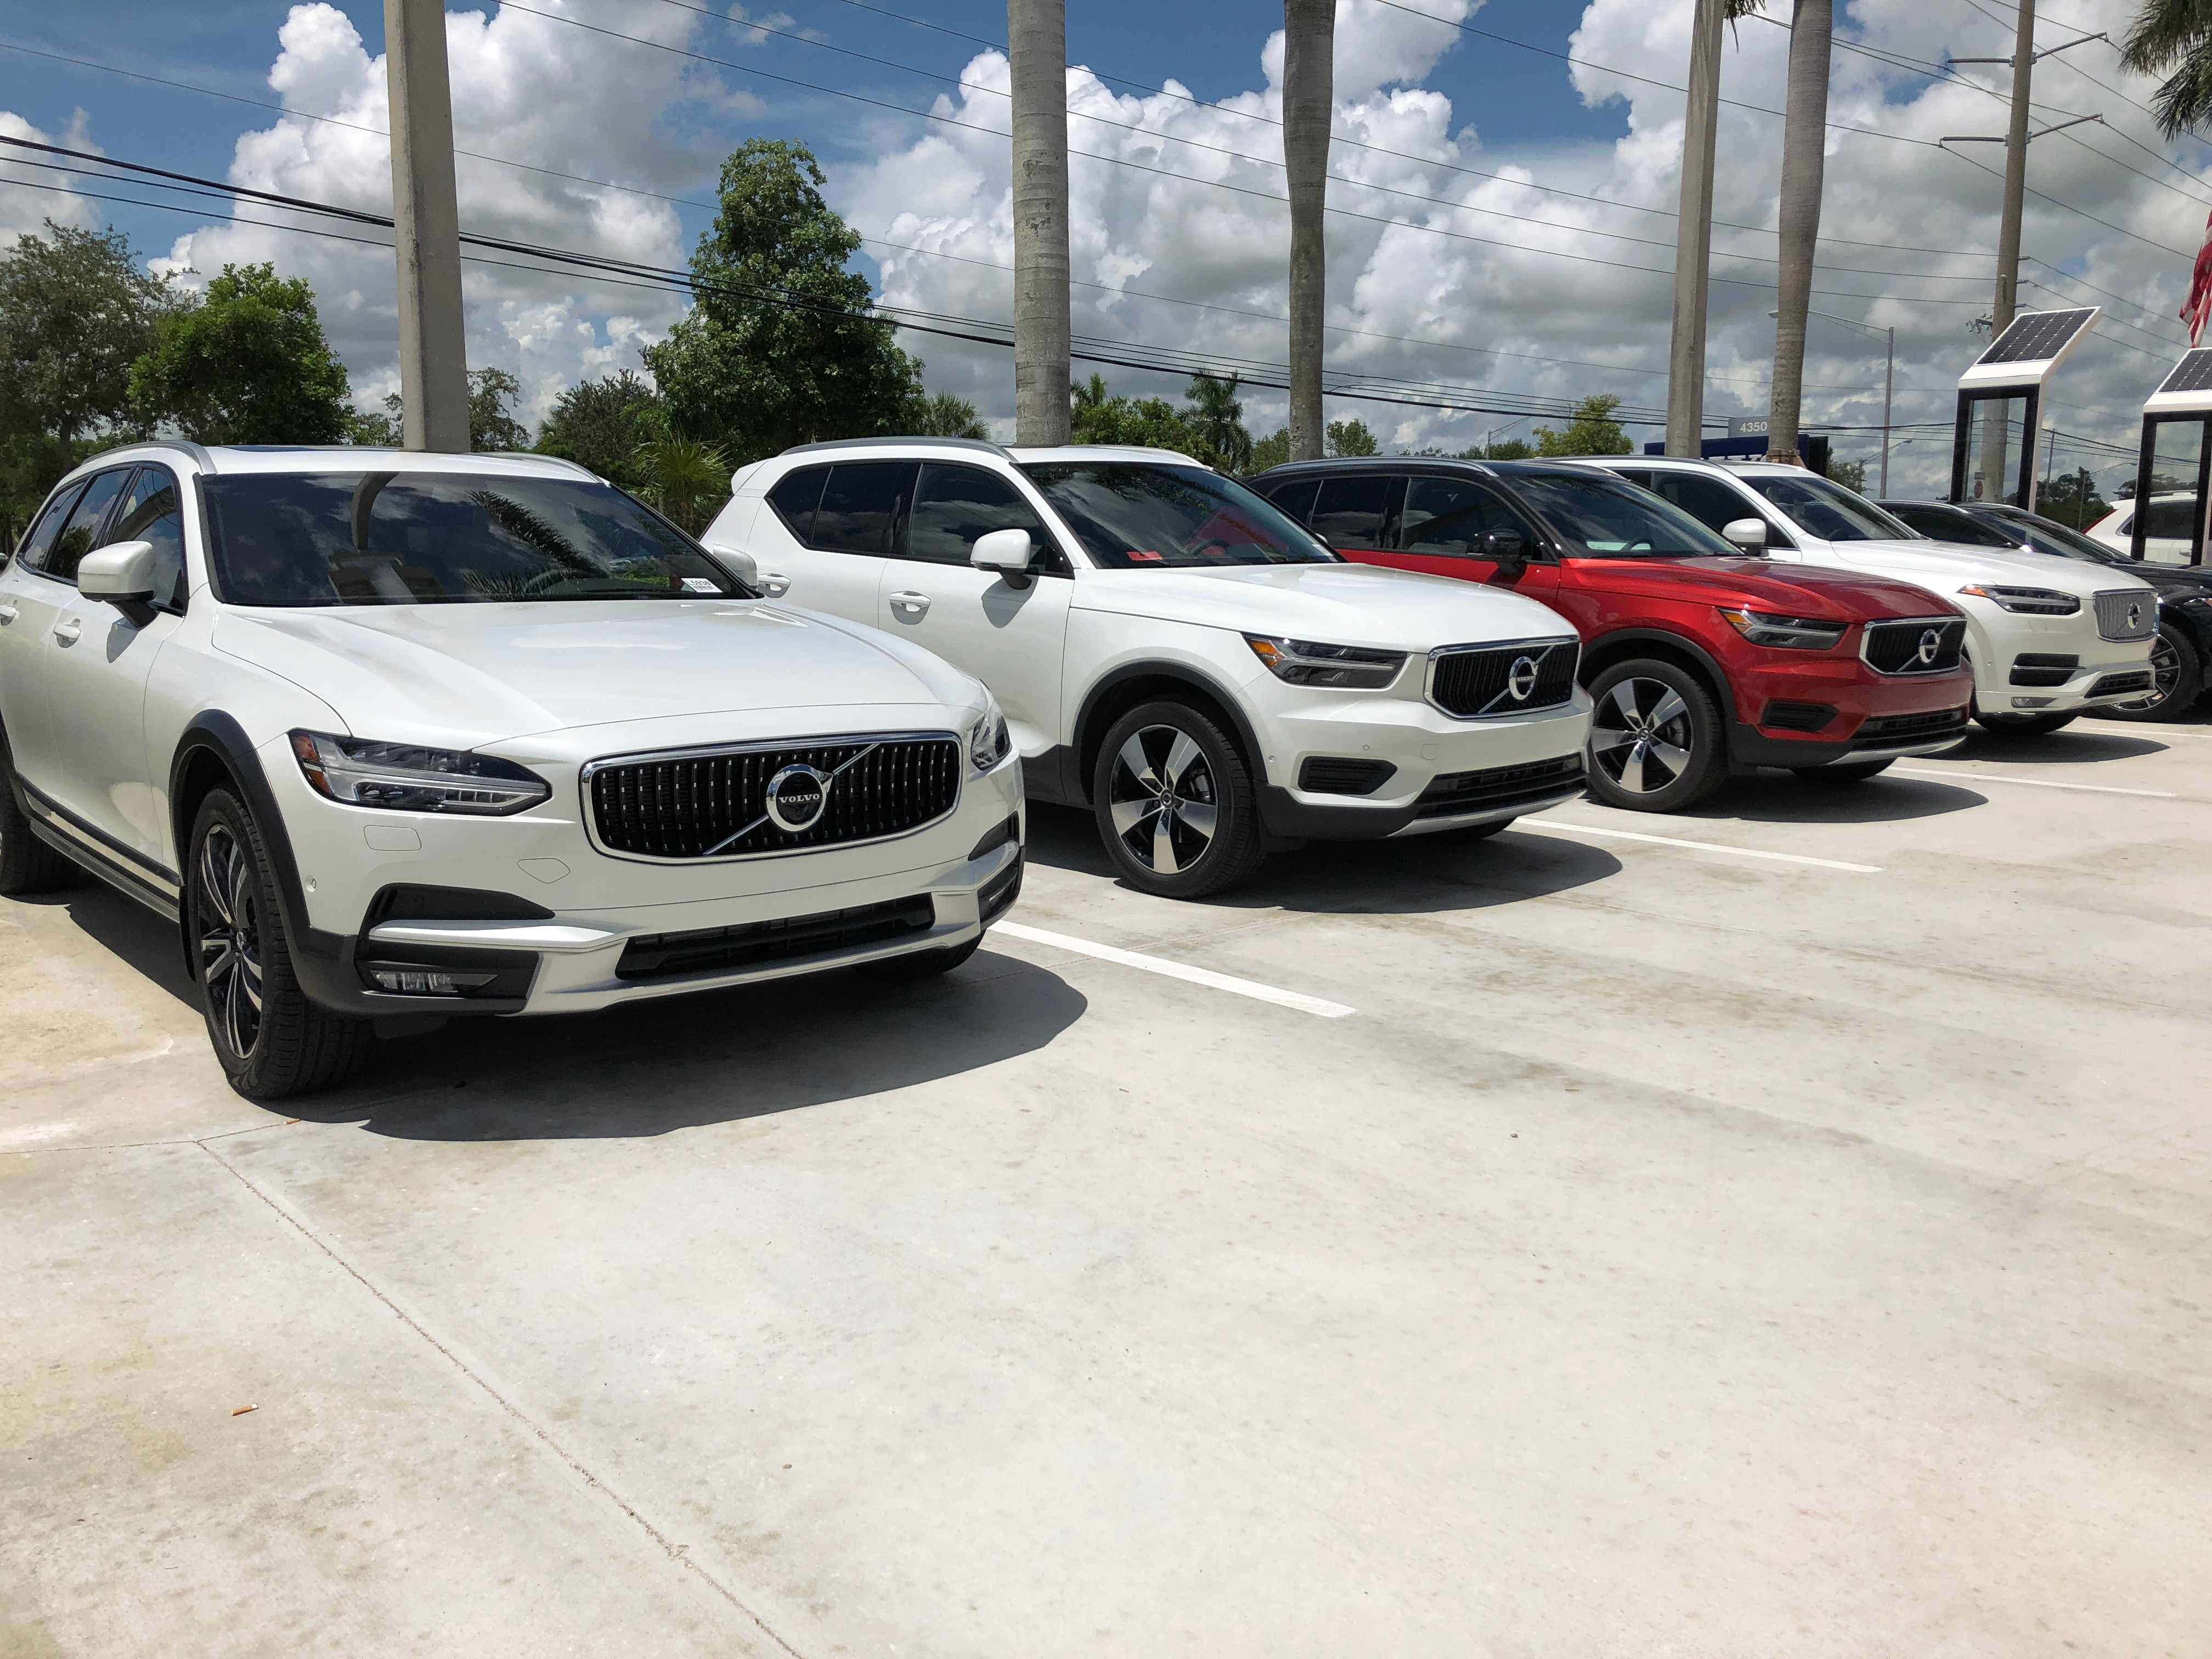 volvo suvs in the gunther volvo cars coconut creek dealership lot